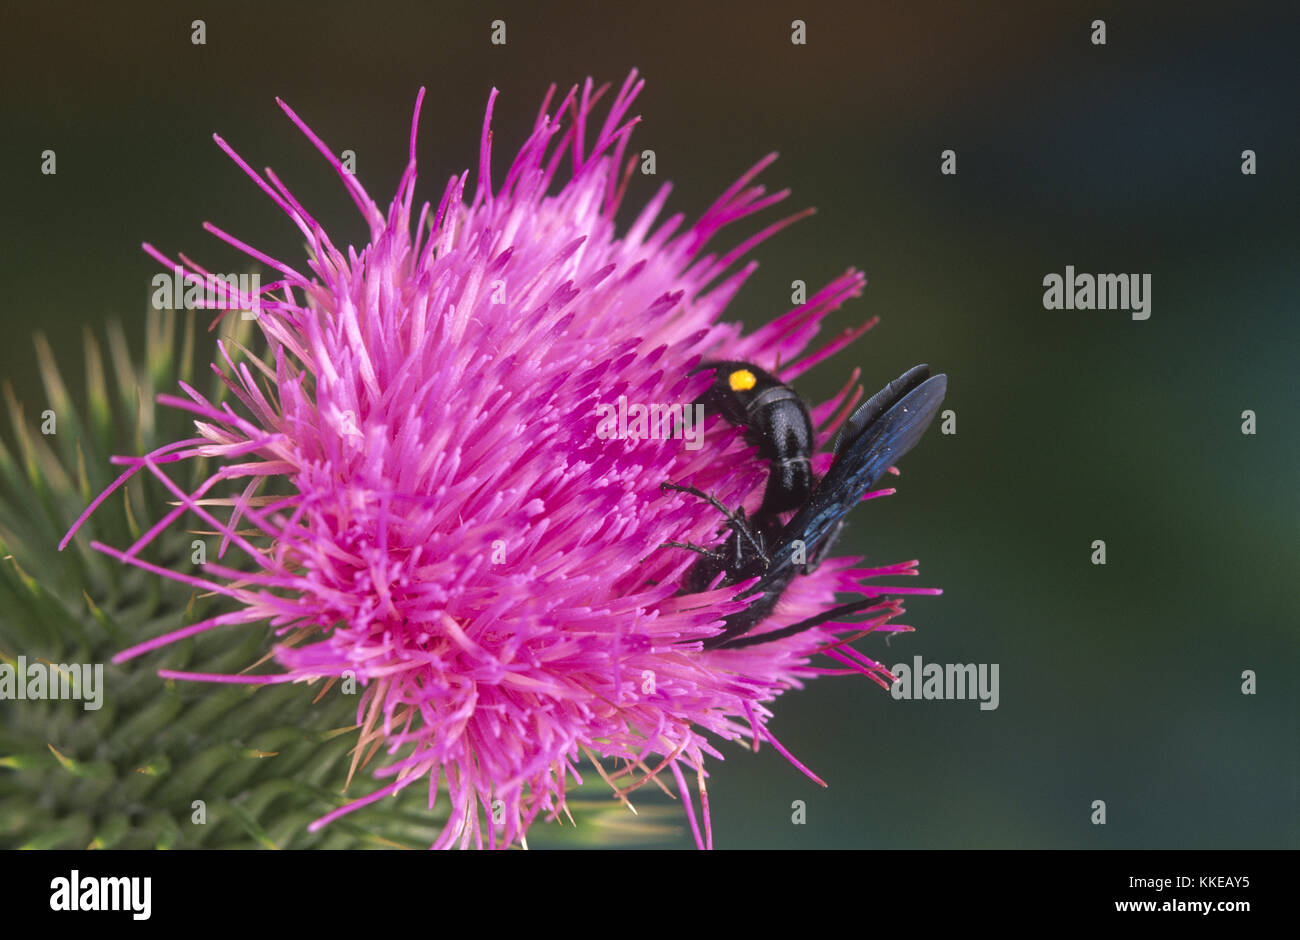 Hairy Flower Wasp (Scoliidae) on Scotch thistle flower - Stock Image